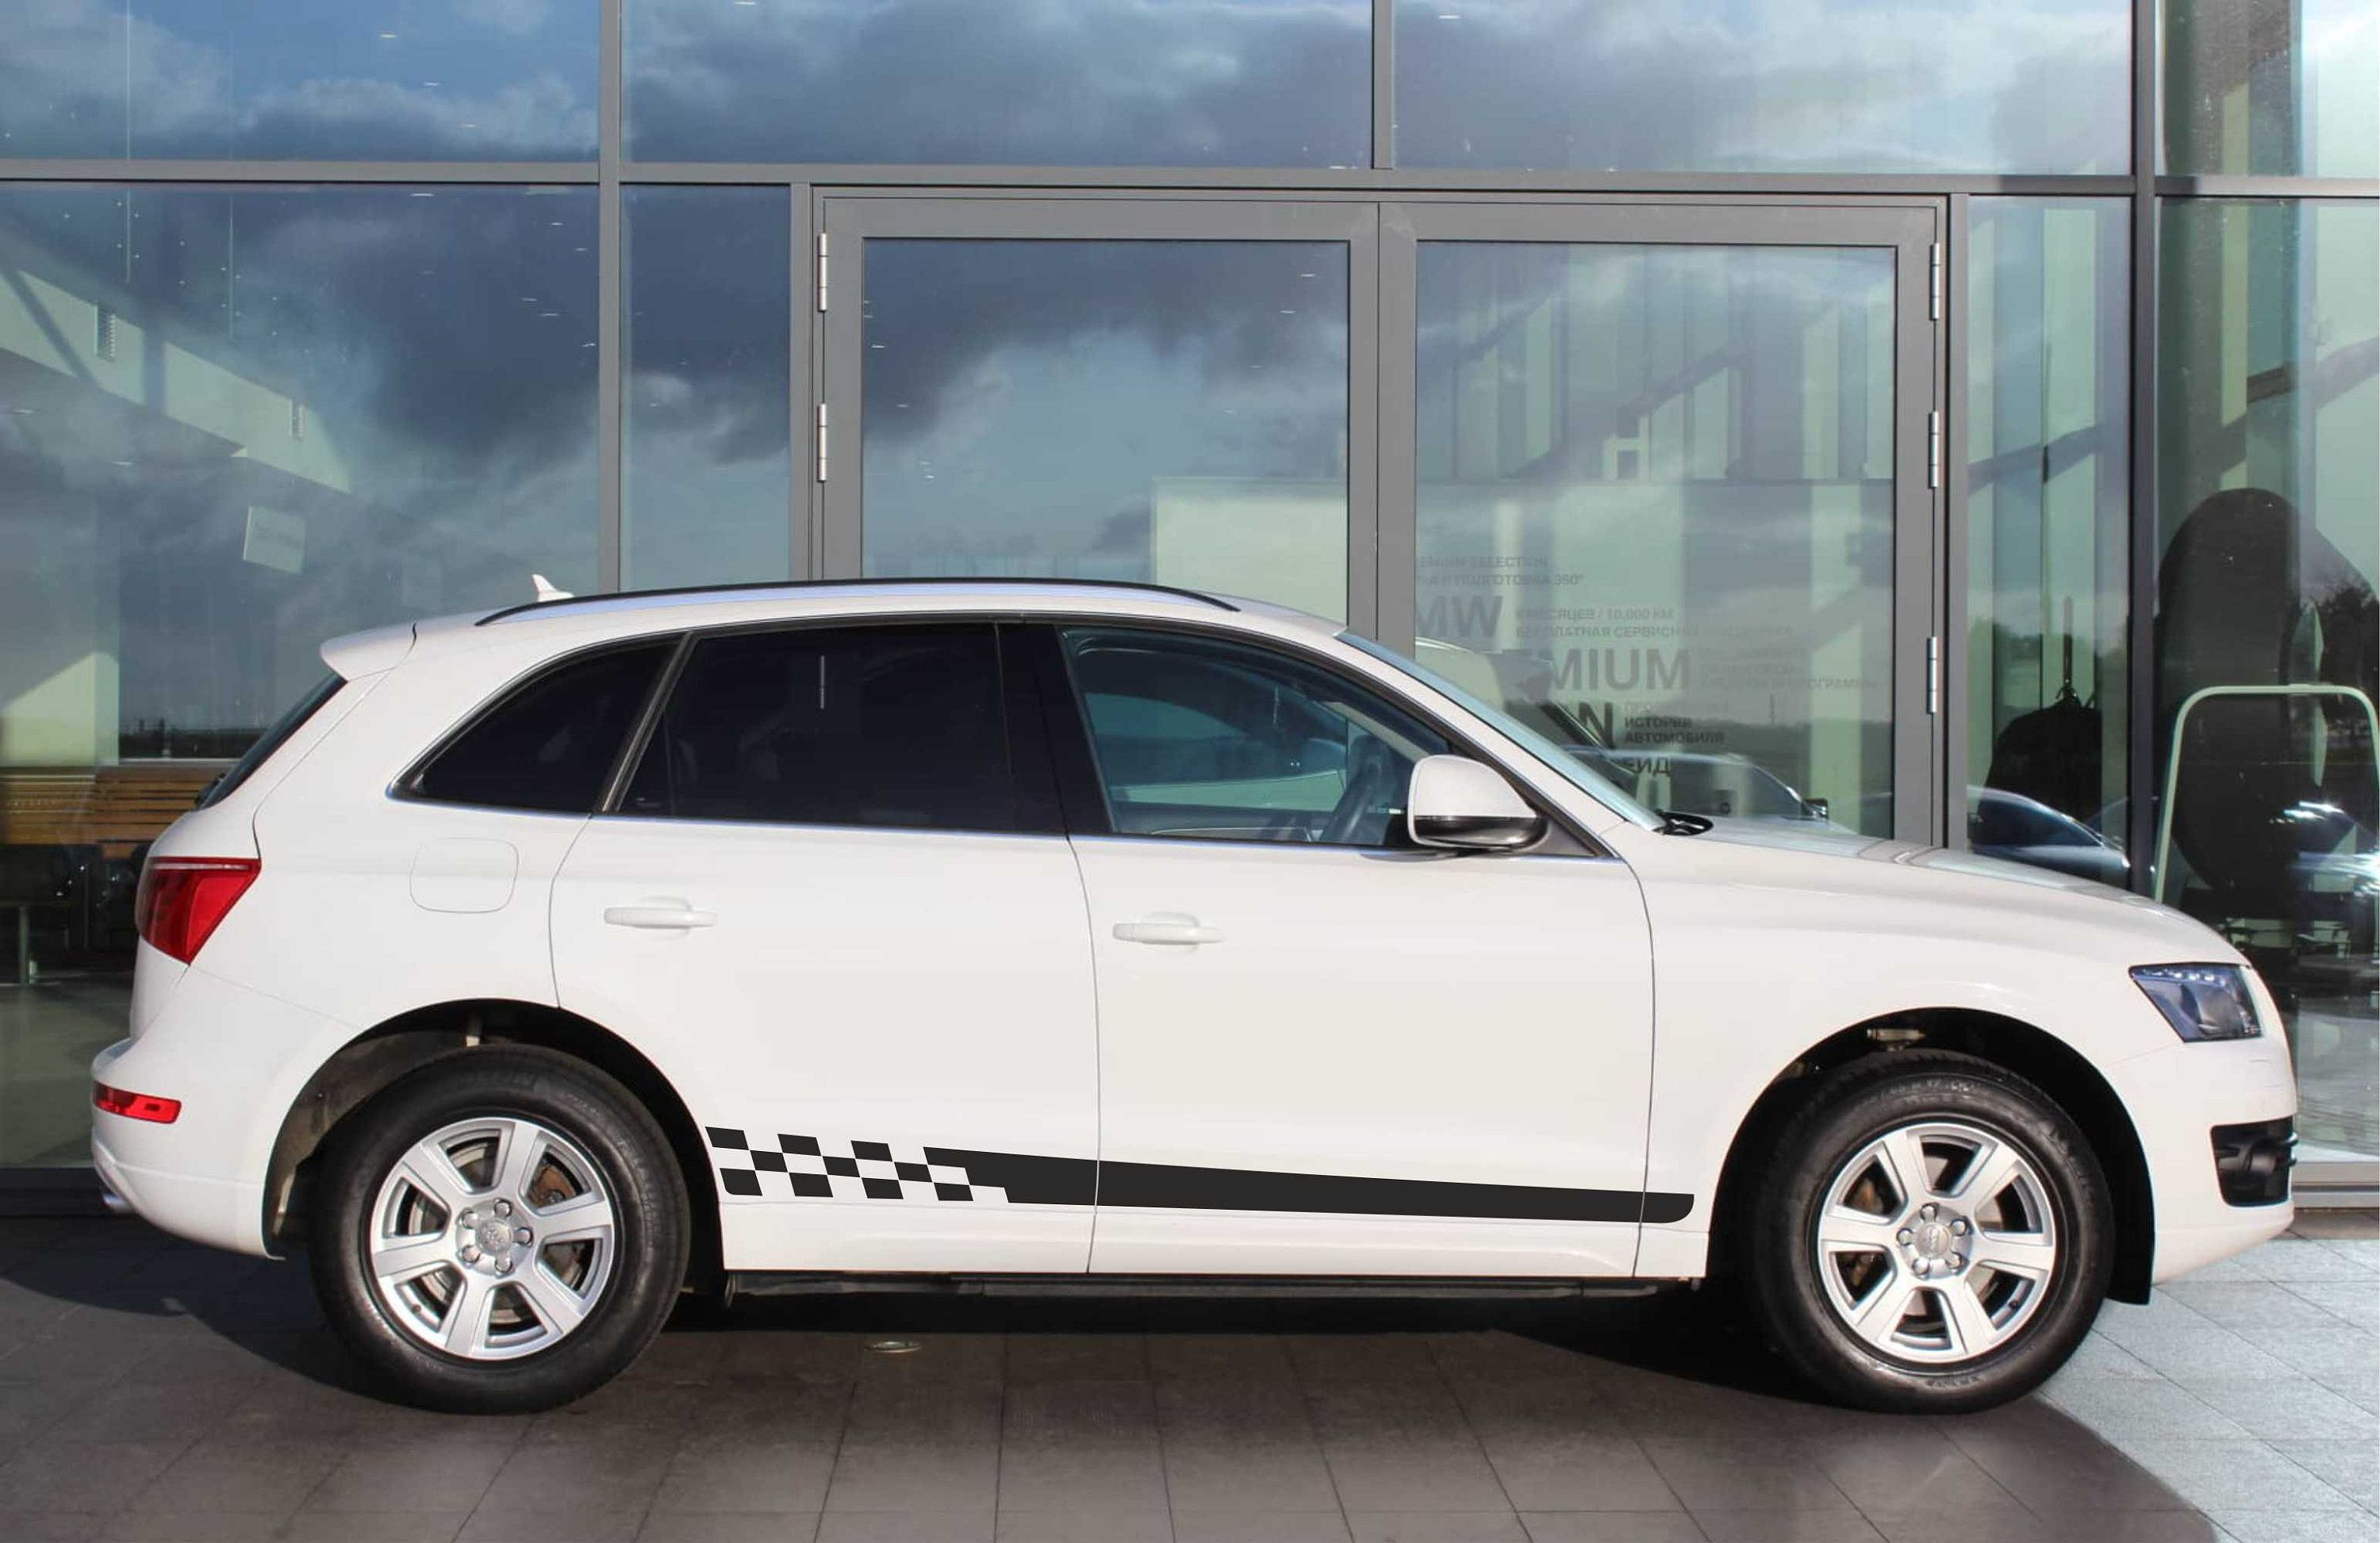 For Audi Q5 Side Stripes Matt Or Glossy Decals Etsy Car Stripes Audi Audi Q5